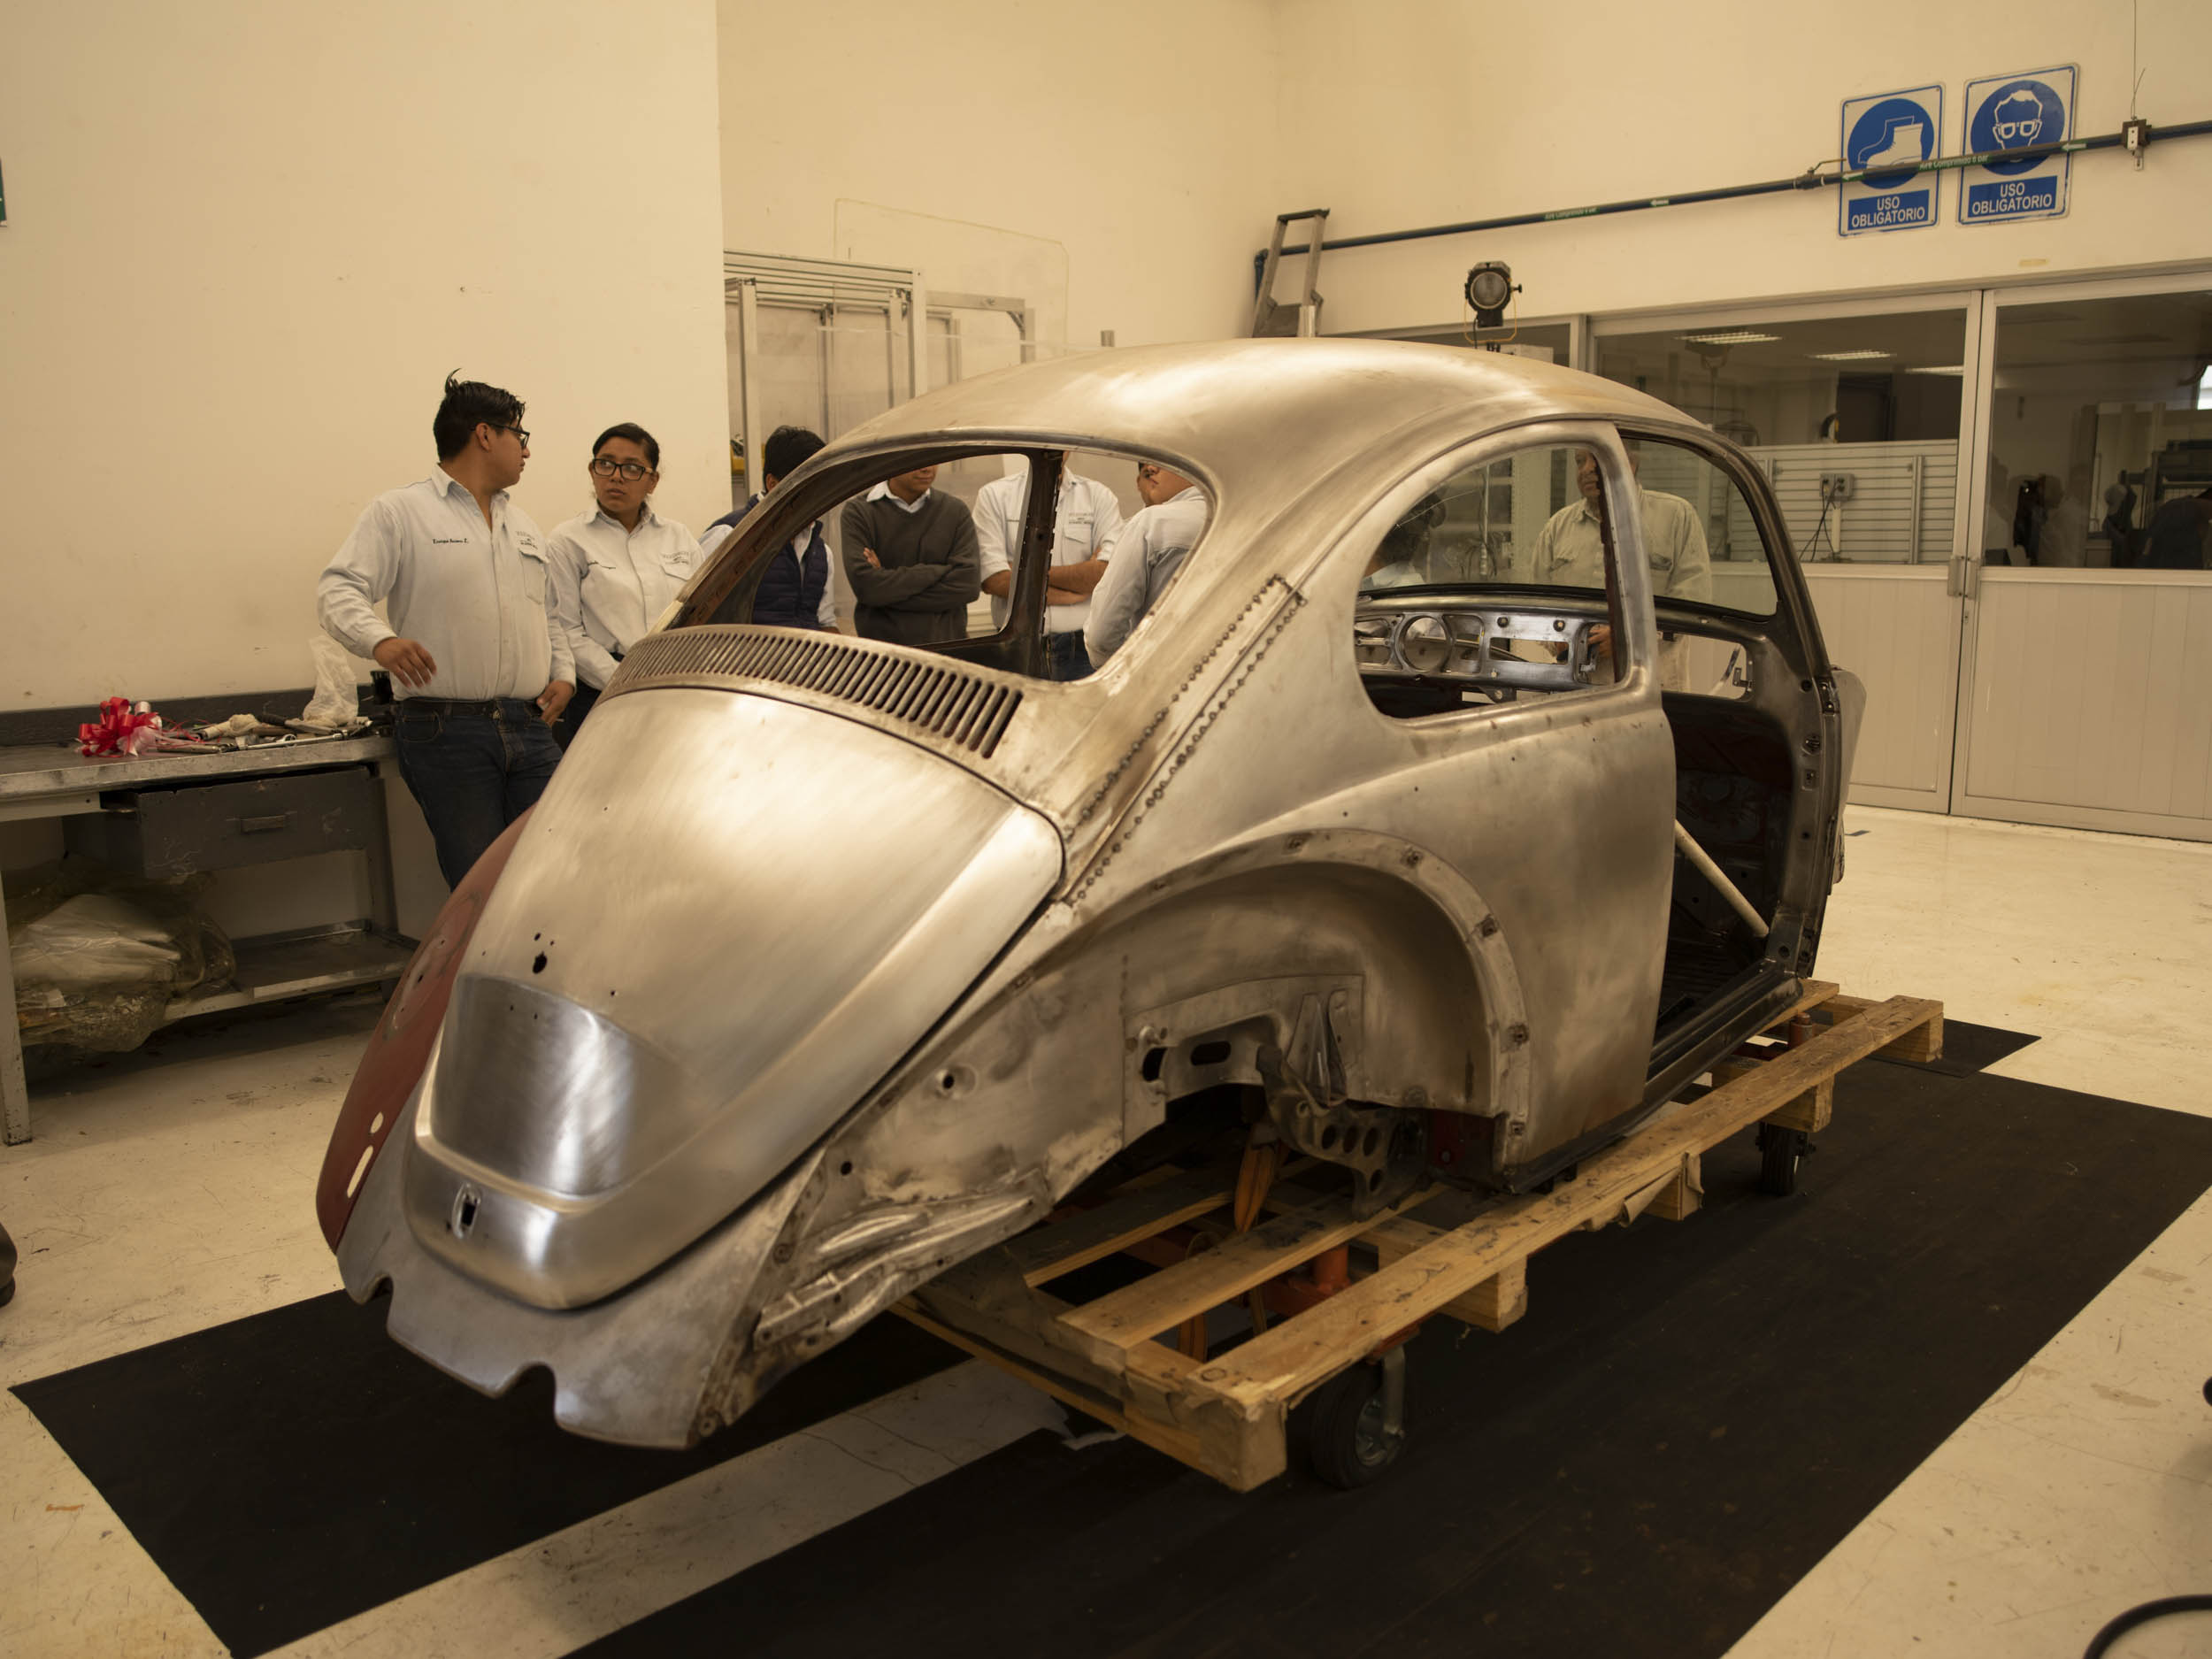 1967 Volkswagen Beetle metal shell